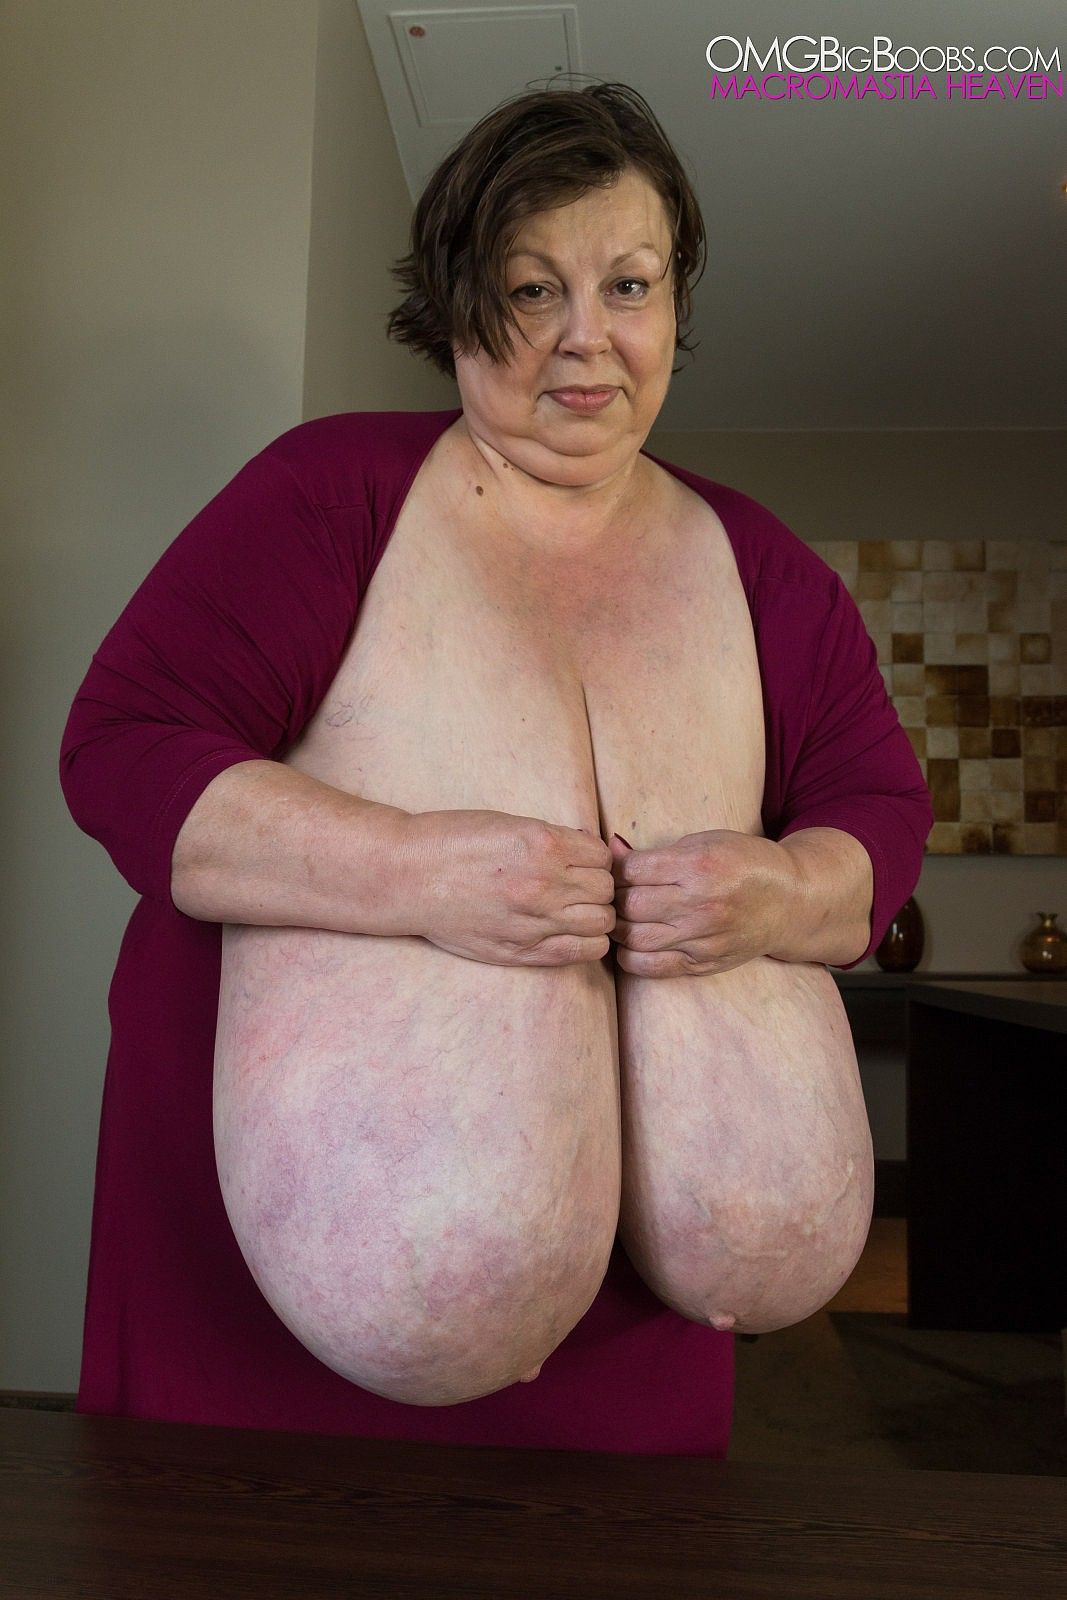 Old woman with big boobs